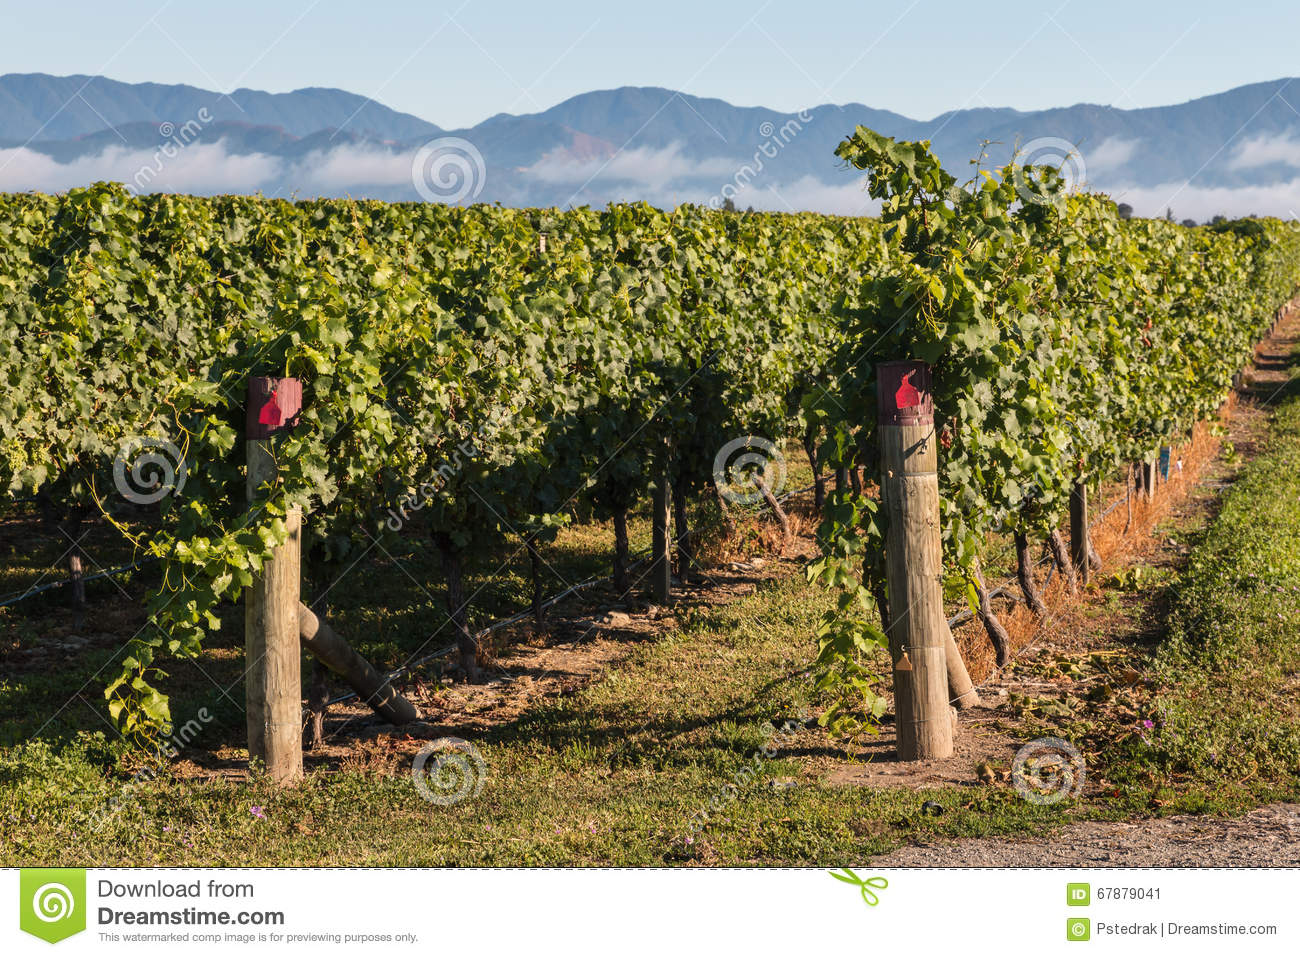 Rows of grapevine in vineyard